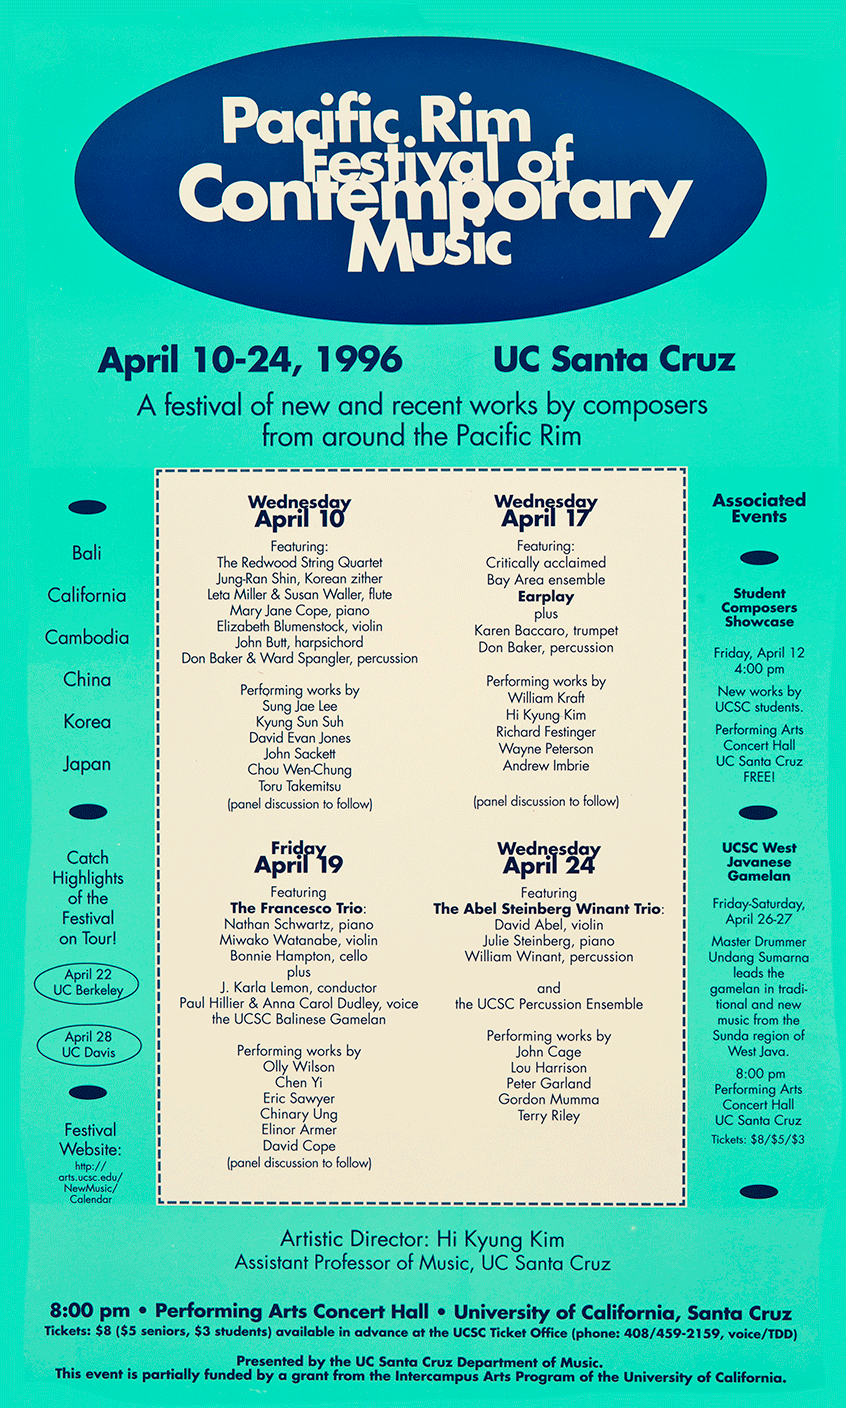 Pacific Rim Festival of Contemporary Music 1996